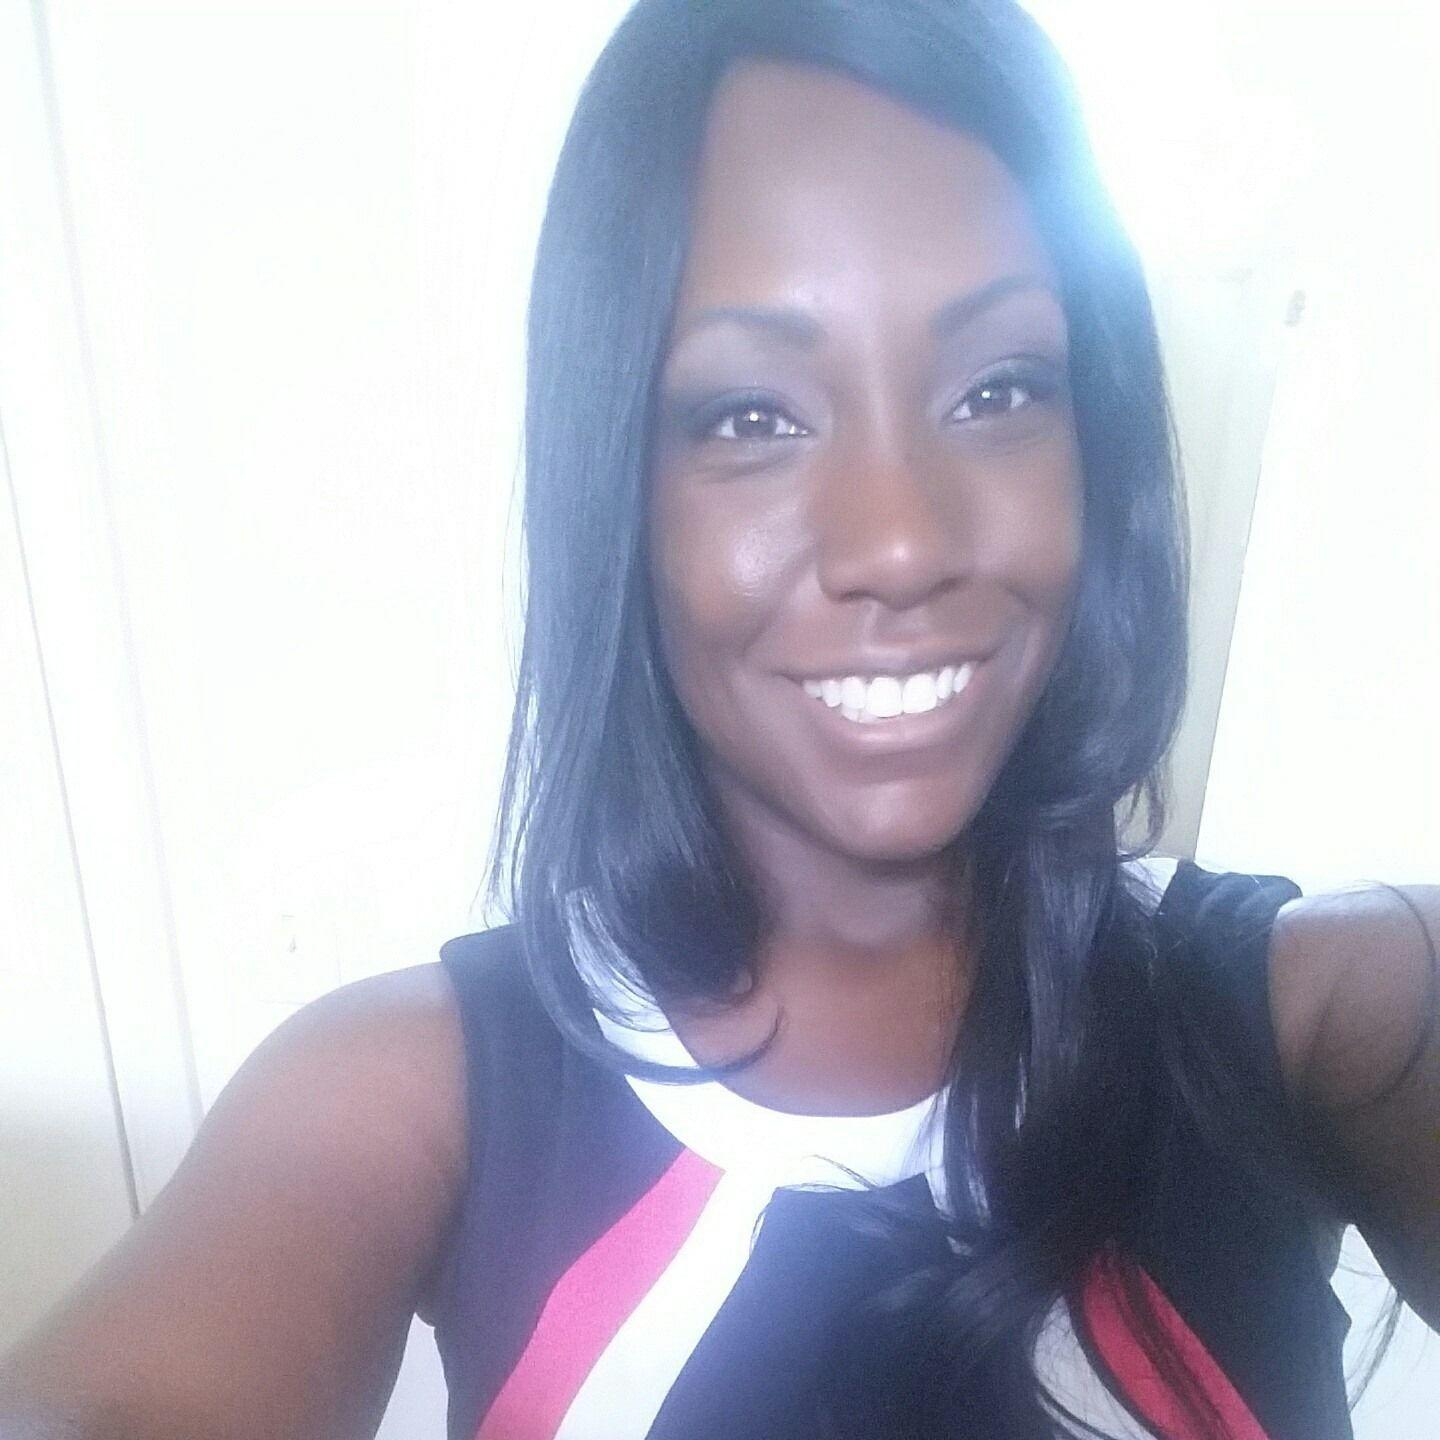 inglewood single women Free to join & browse - 1000's of women in inglewood, california - interracial dating, relationships & marriage with ladies & females online.